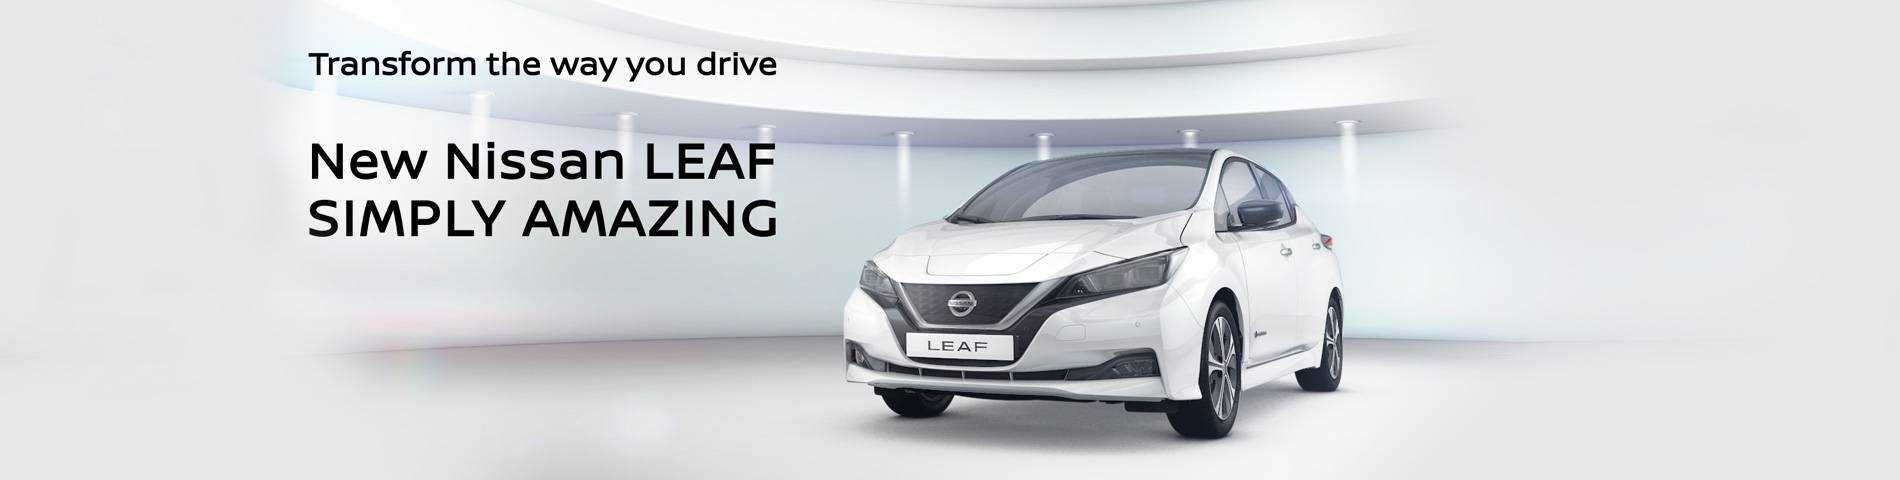 Go electric and save money with nissan leaf